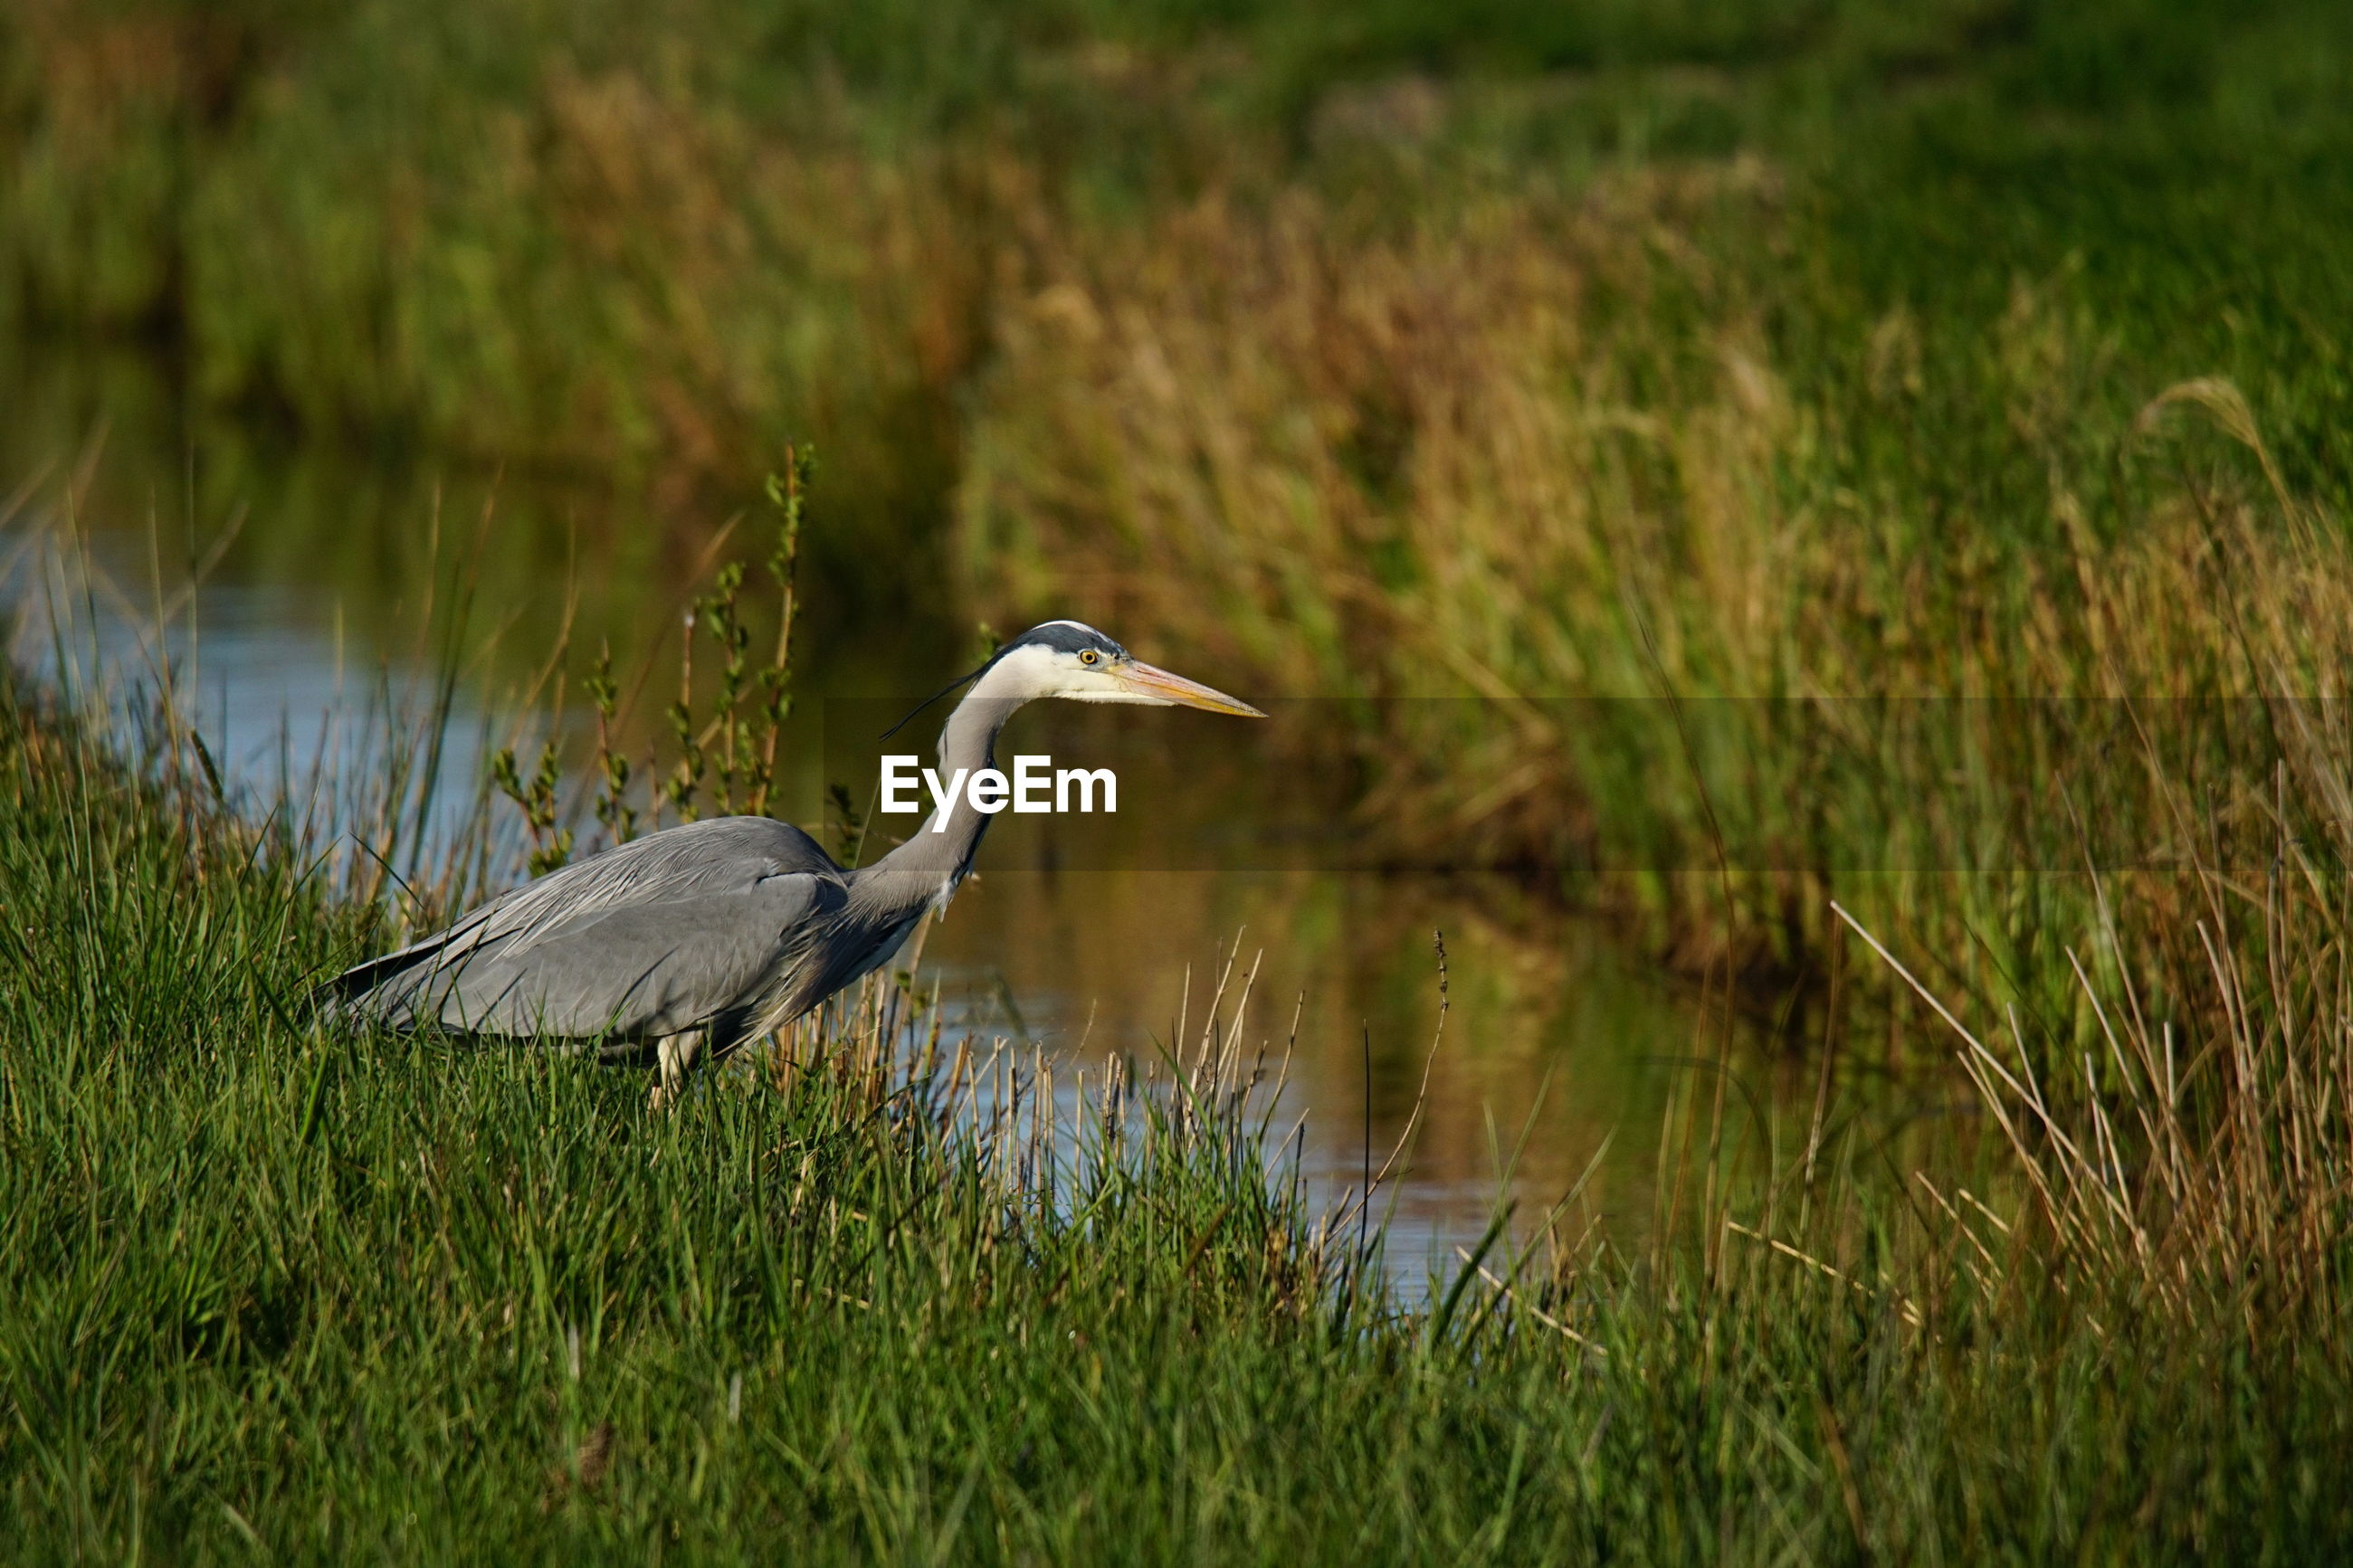 HIGH ANGLE VIEW OF GRAY HERON